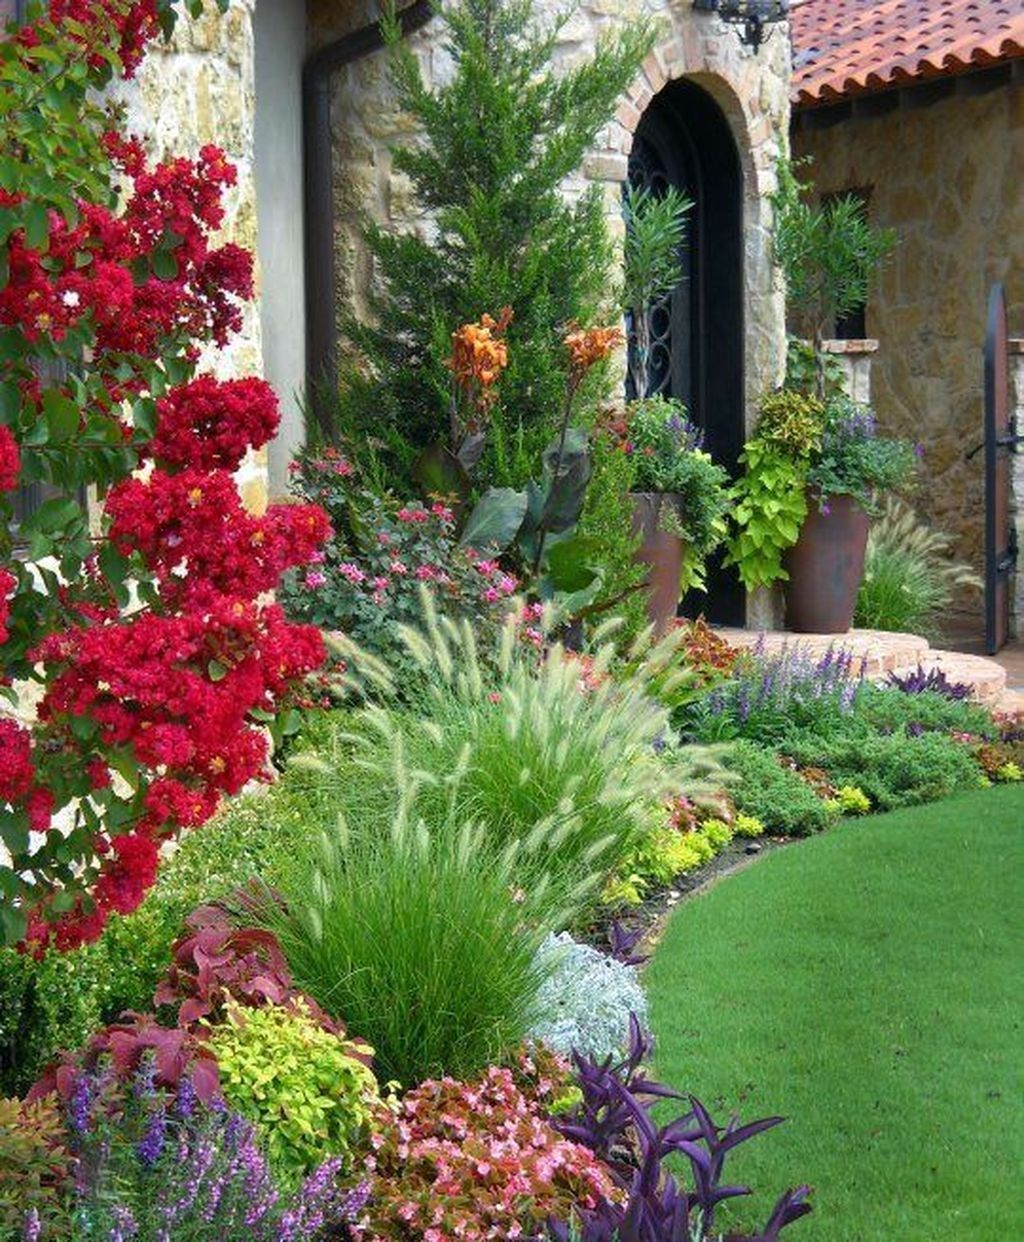 39 Beautiful Flower Beds Ideas For Home - HOOMDSGN #flowerbeds